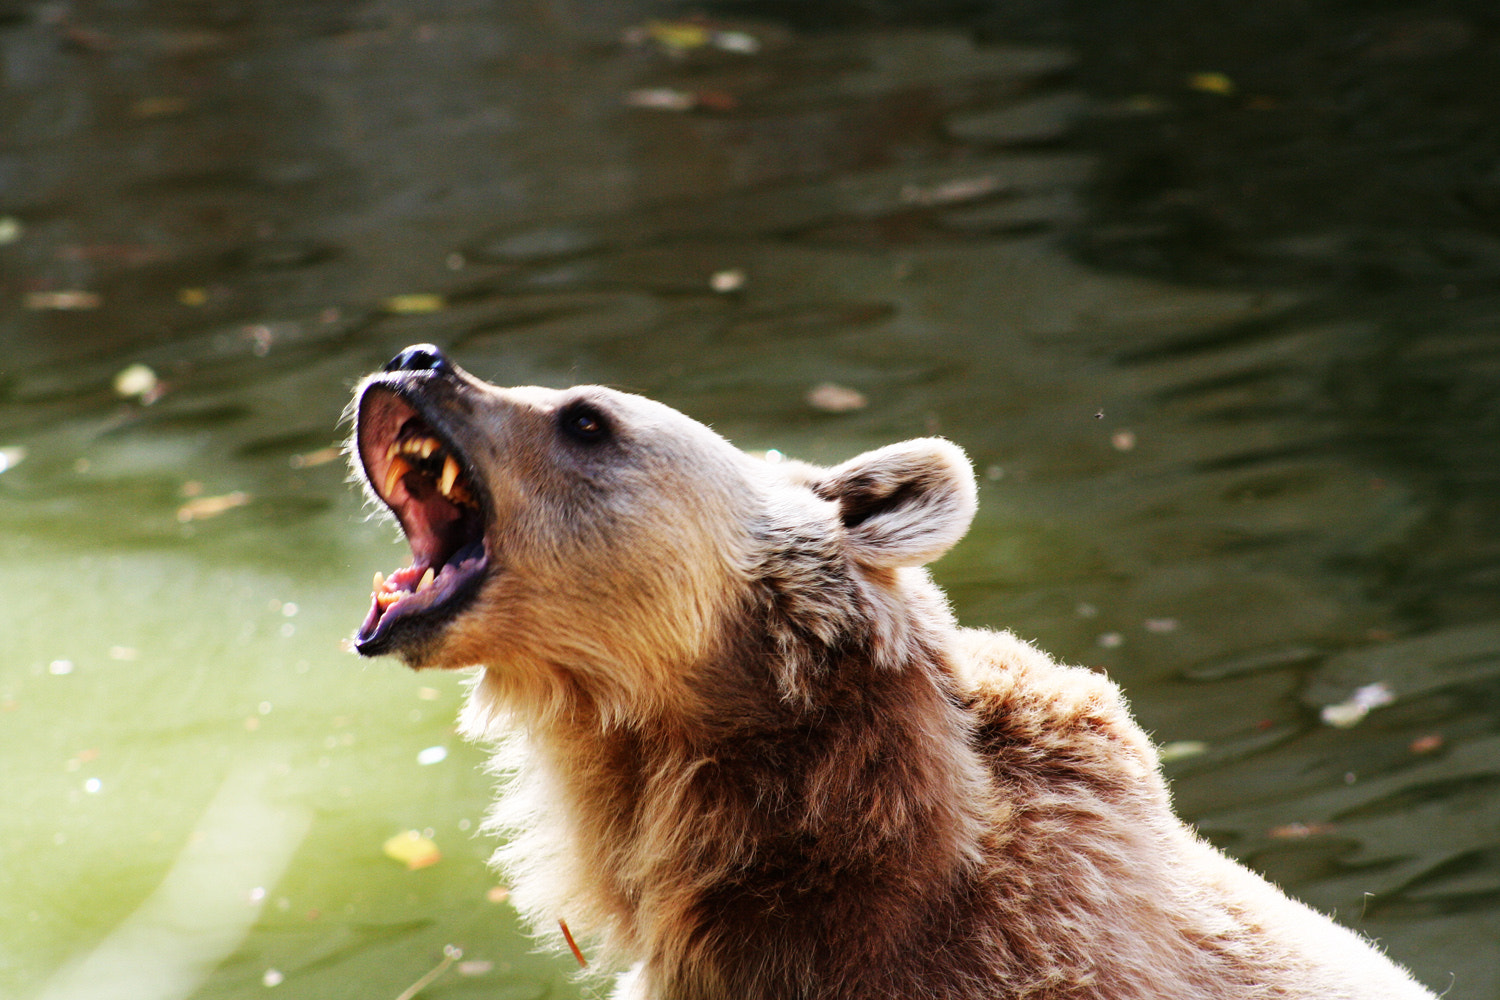 Photograph Angry bear by Alexandra Kosolapova on 500px